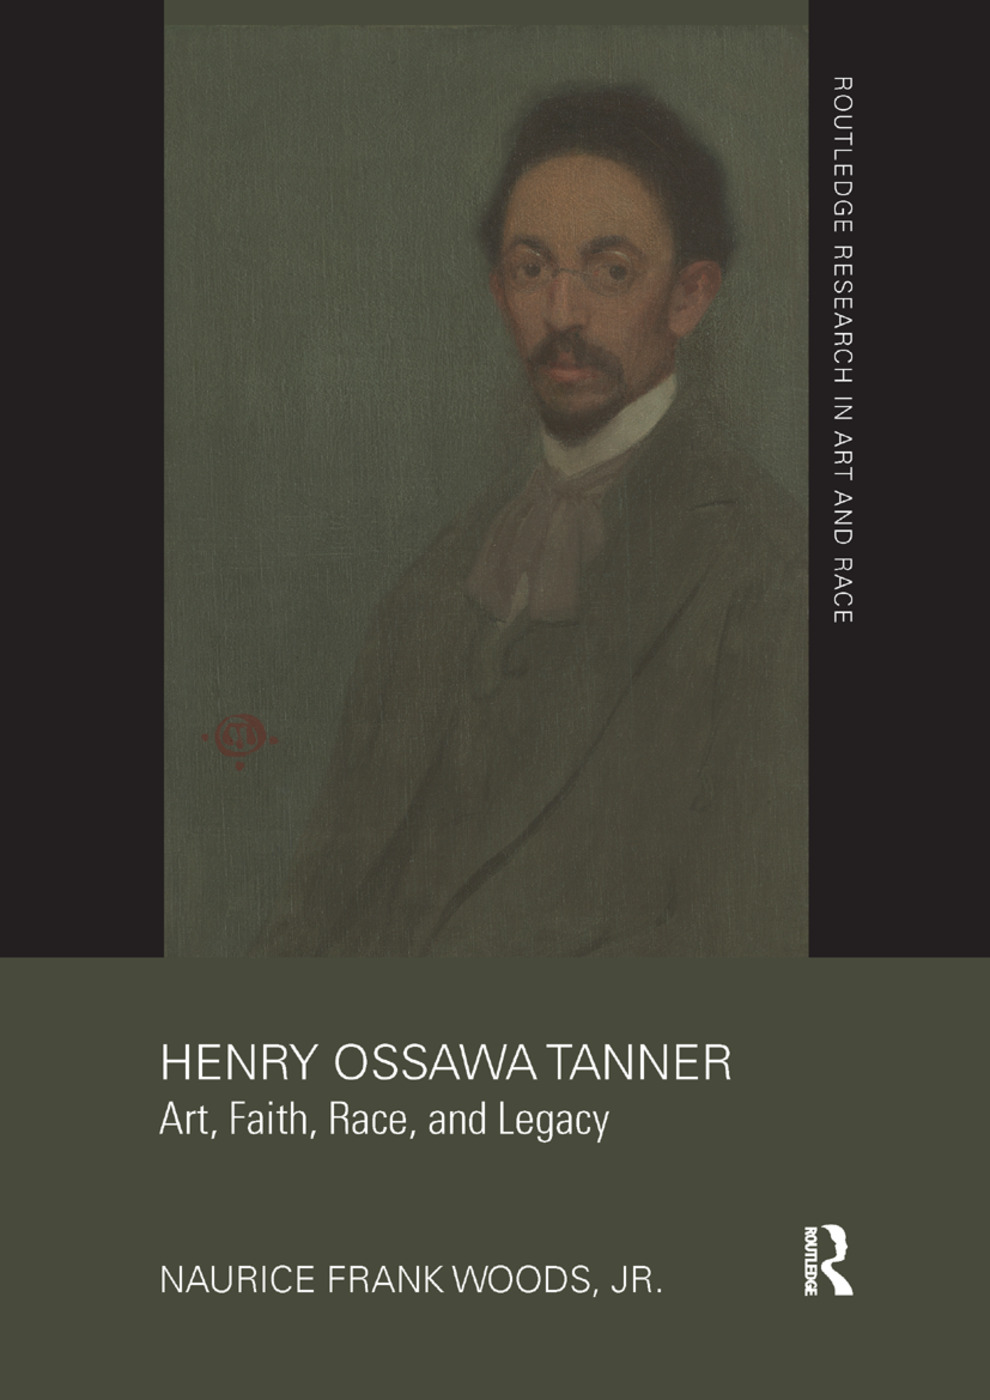 Henry Ossawa Tanner: Art, Faith, Race, and Legacy book cover